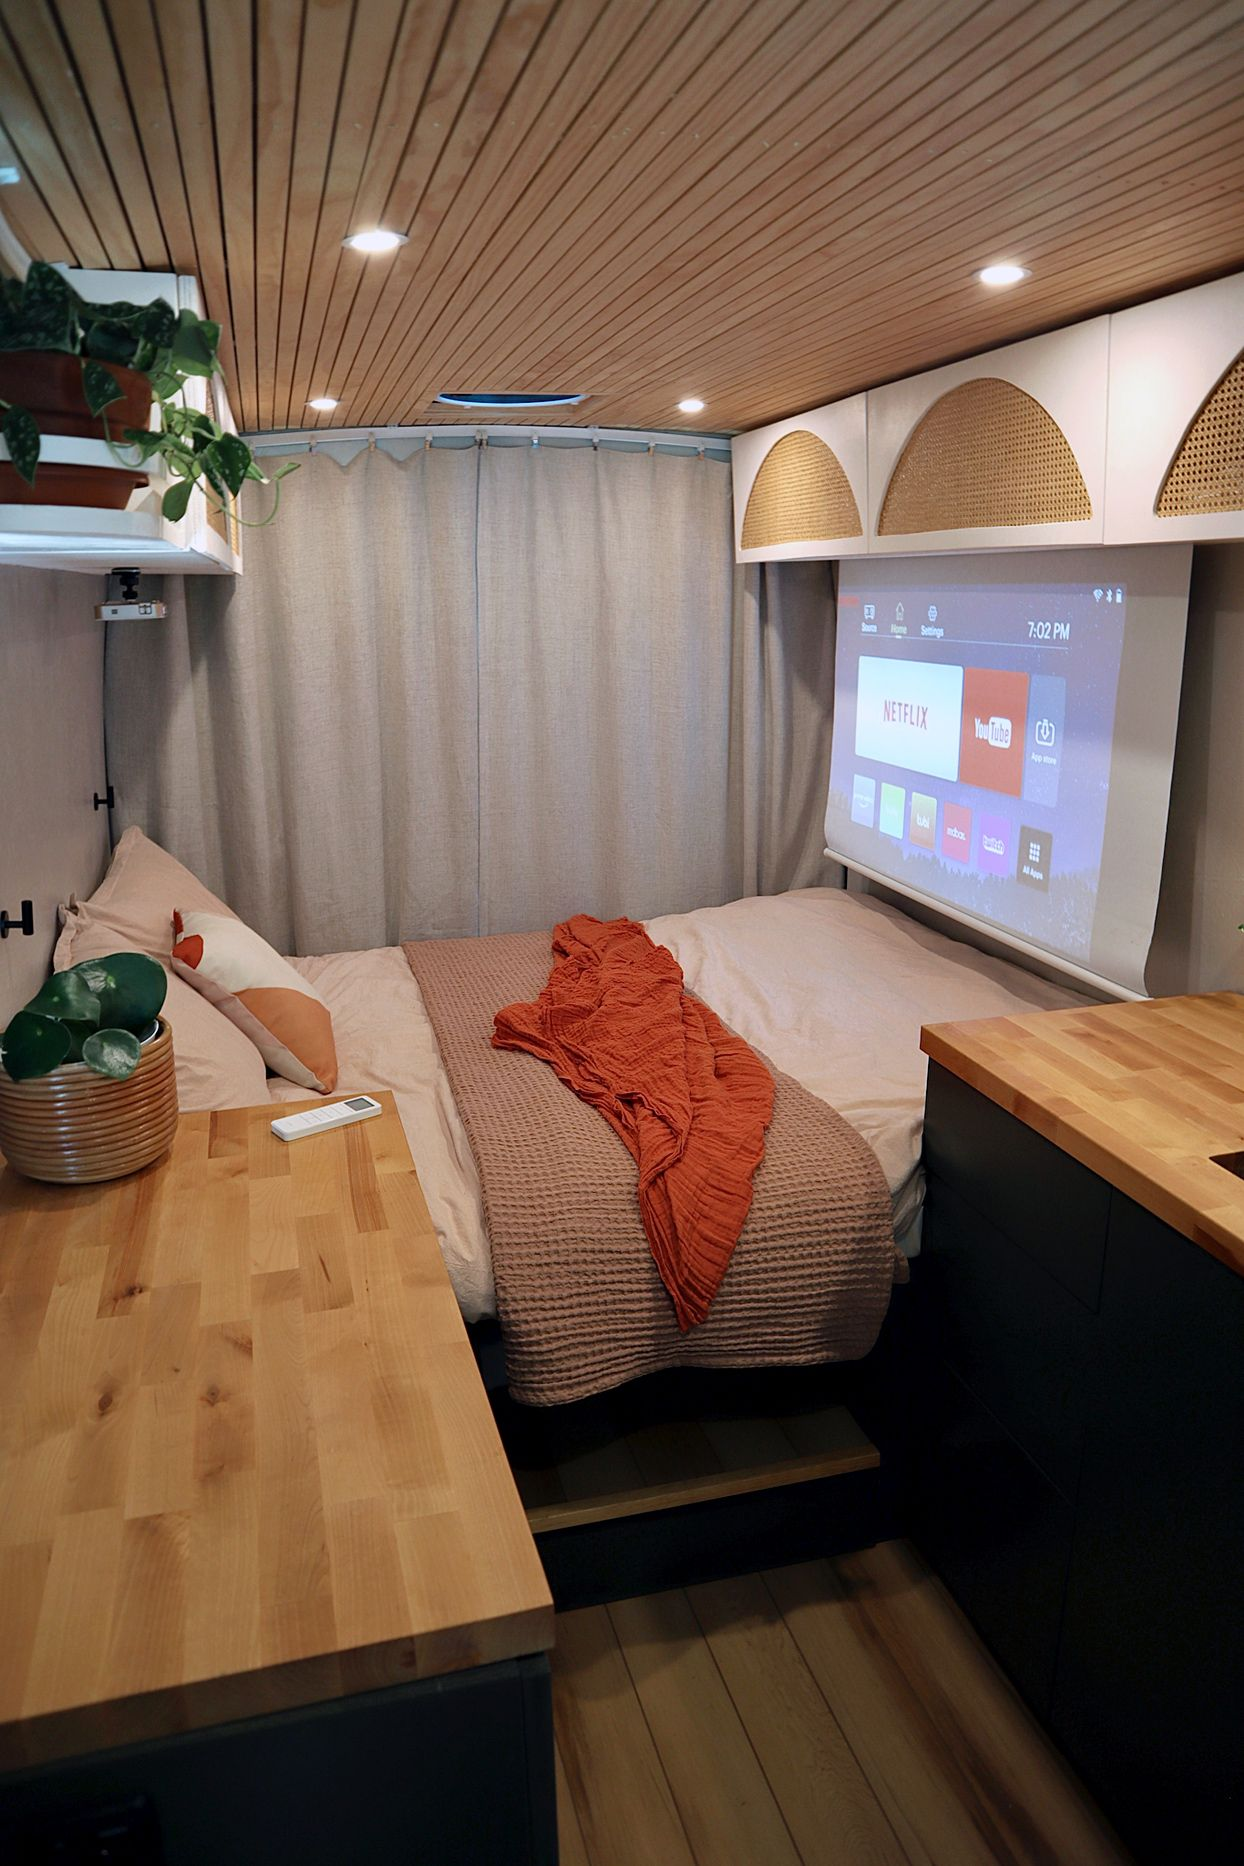 This Incredible Van Makeover Features Clever DIYs You Can Steal for Any Small Space